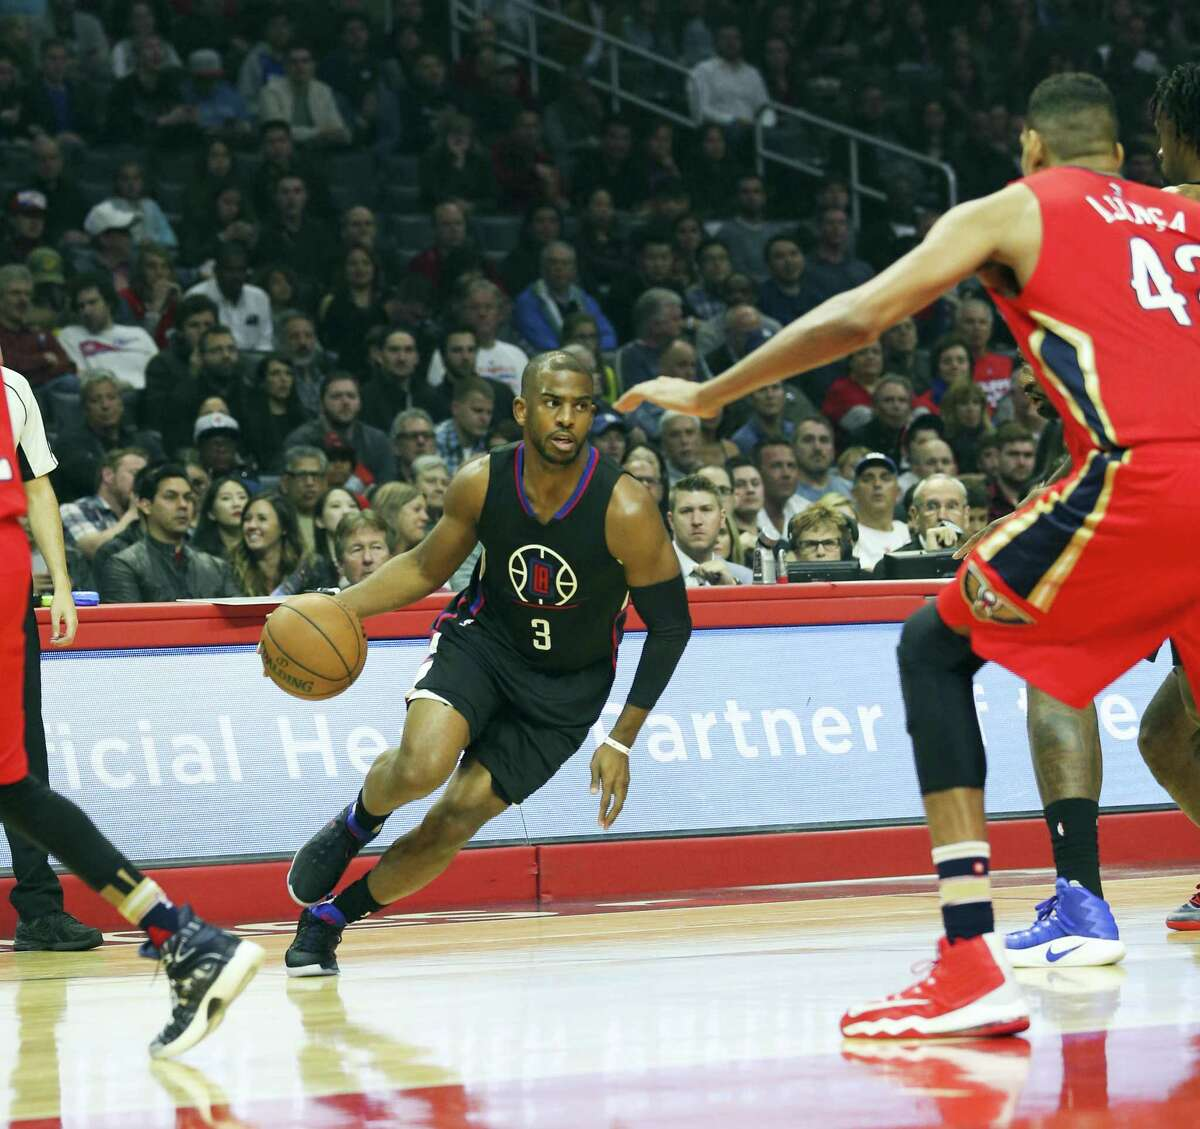 Los Angeles Clippers guard Chris Paul (#3) in actions during an NBA basketball game between Los Angeles Clippers and New Orleans Pelicans on Dec. 10, 2016 in Los Angeles.